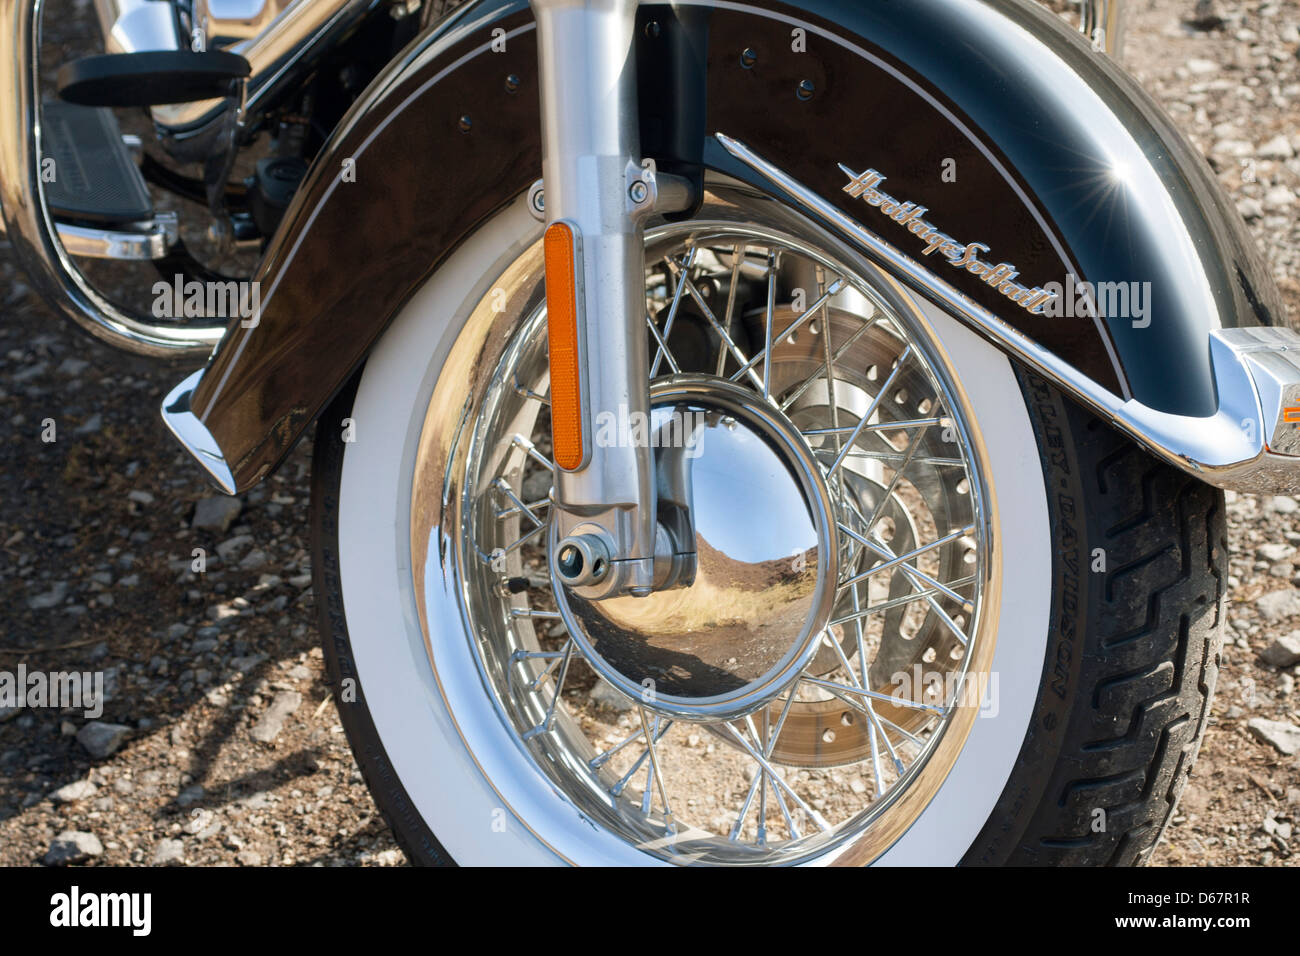 Harley Davidson FLSTC Softail Heritage Classic 2013 front wheel close up abstract image - Stock Image